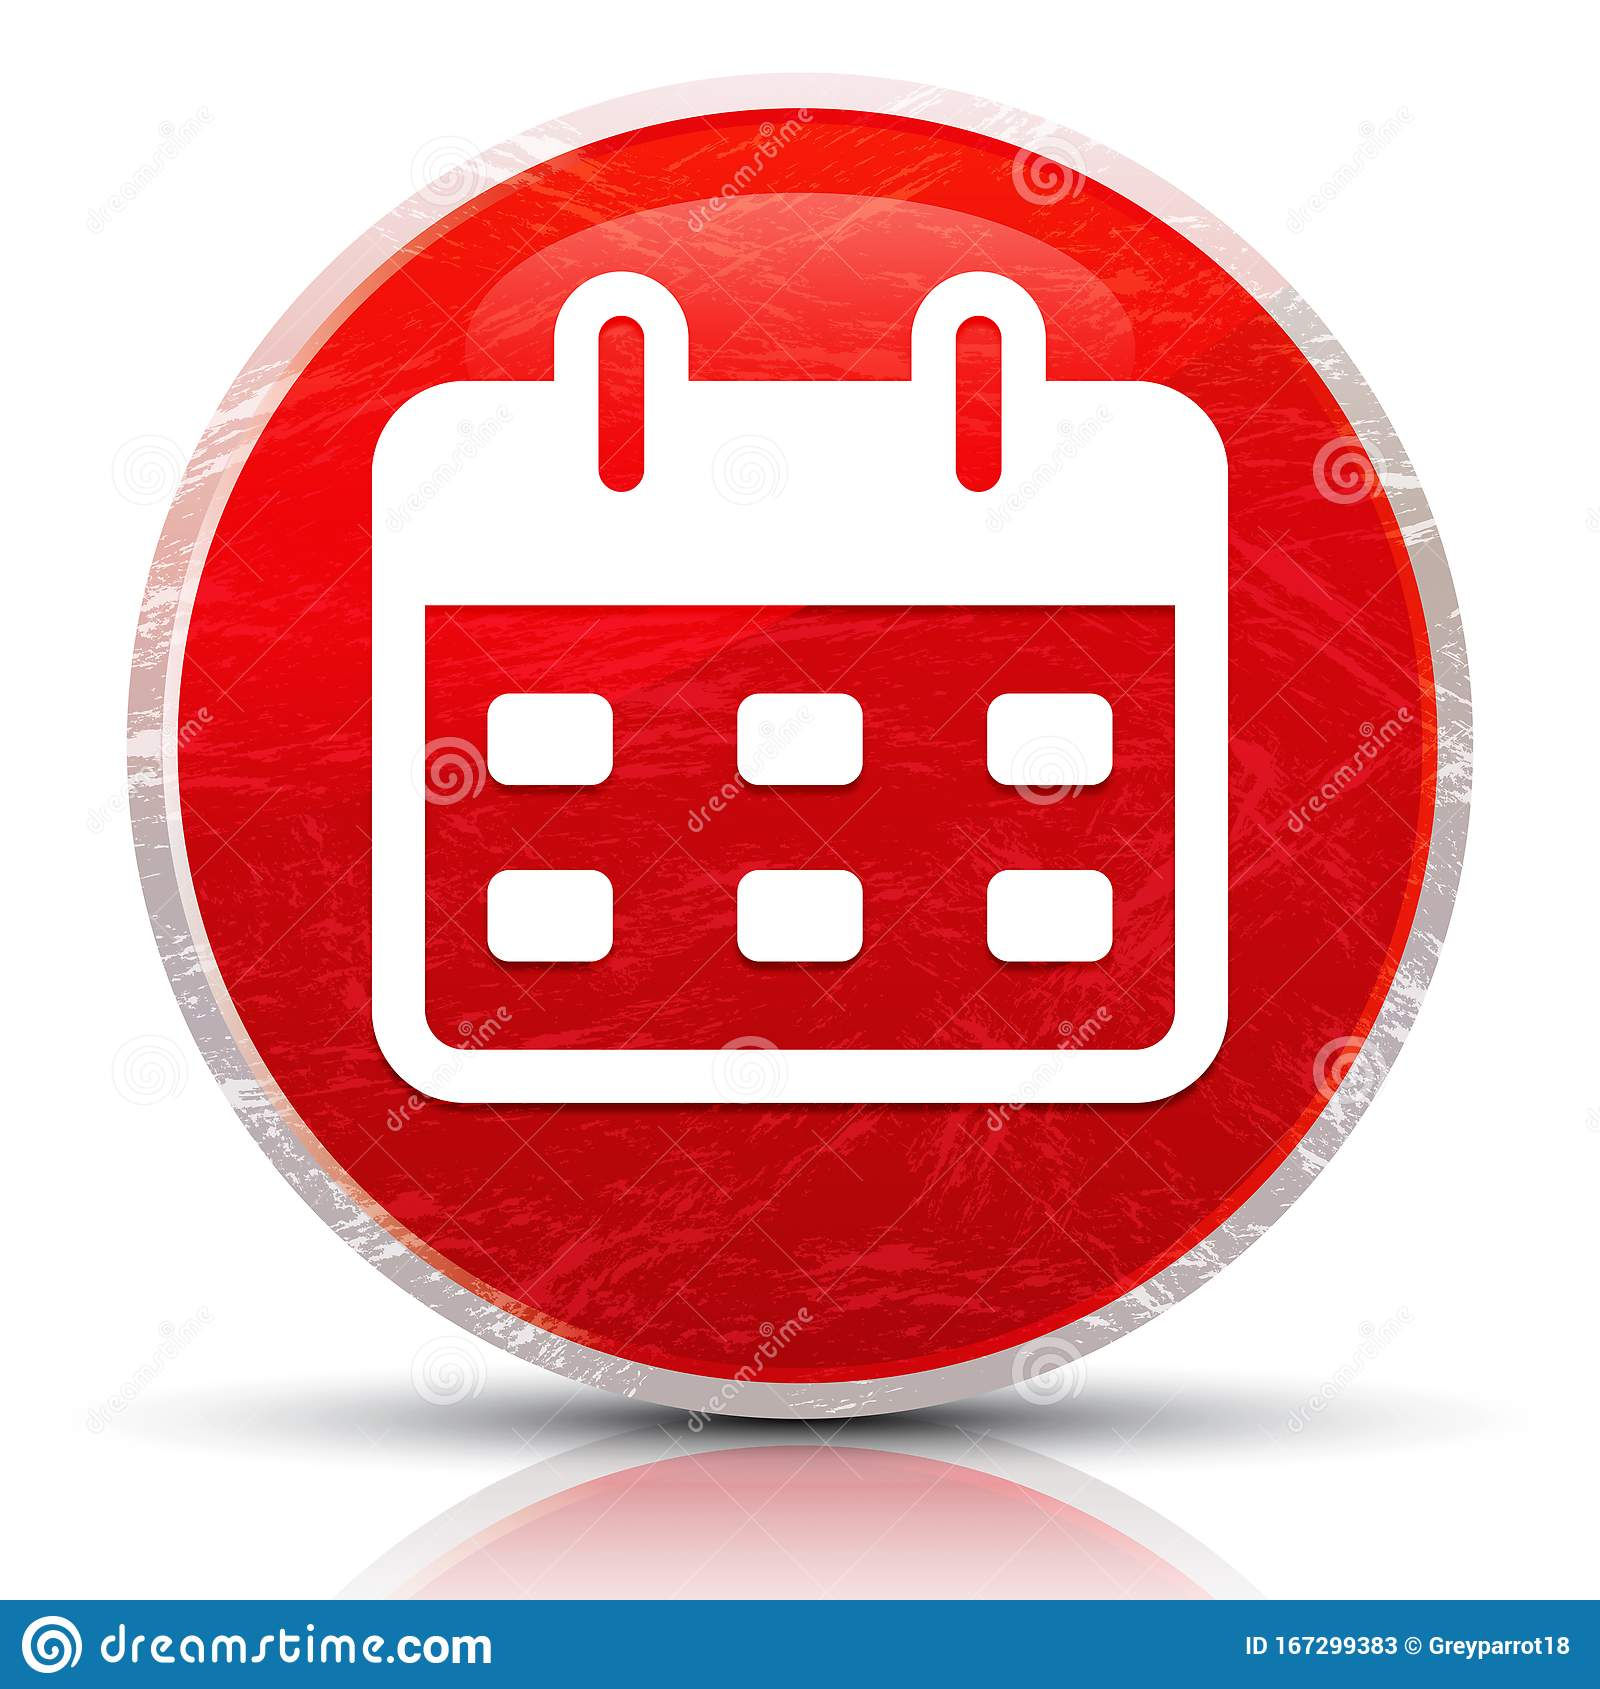 Calendar Icon Metallic Grunge Abstract Red Round Button pertaining to Calendar Icon Red